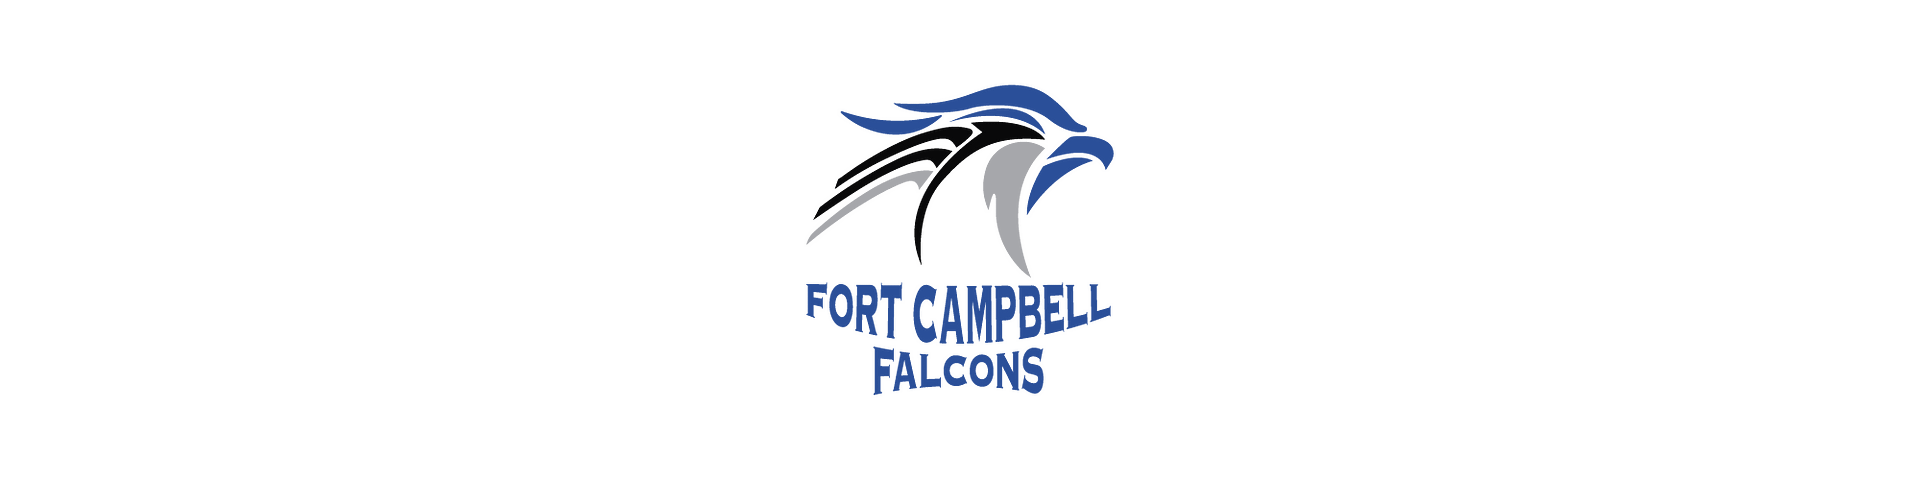 Fort Campbell High School